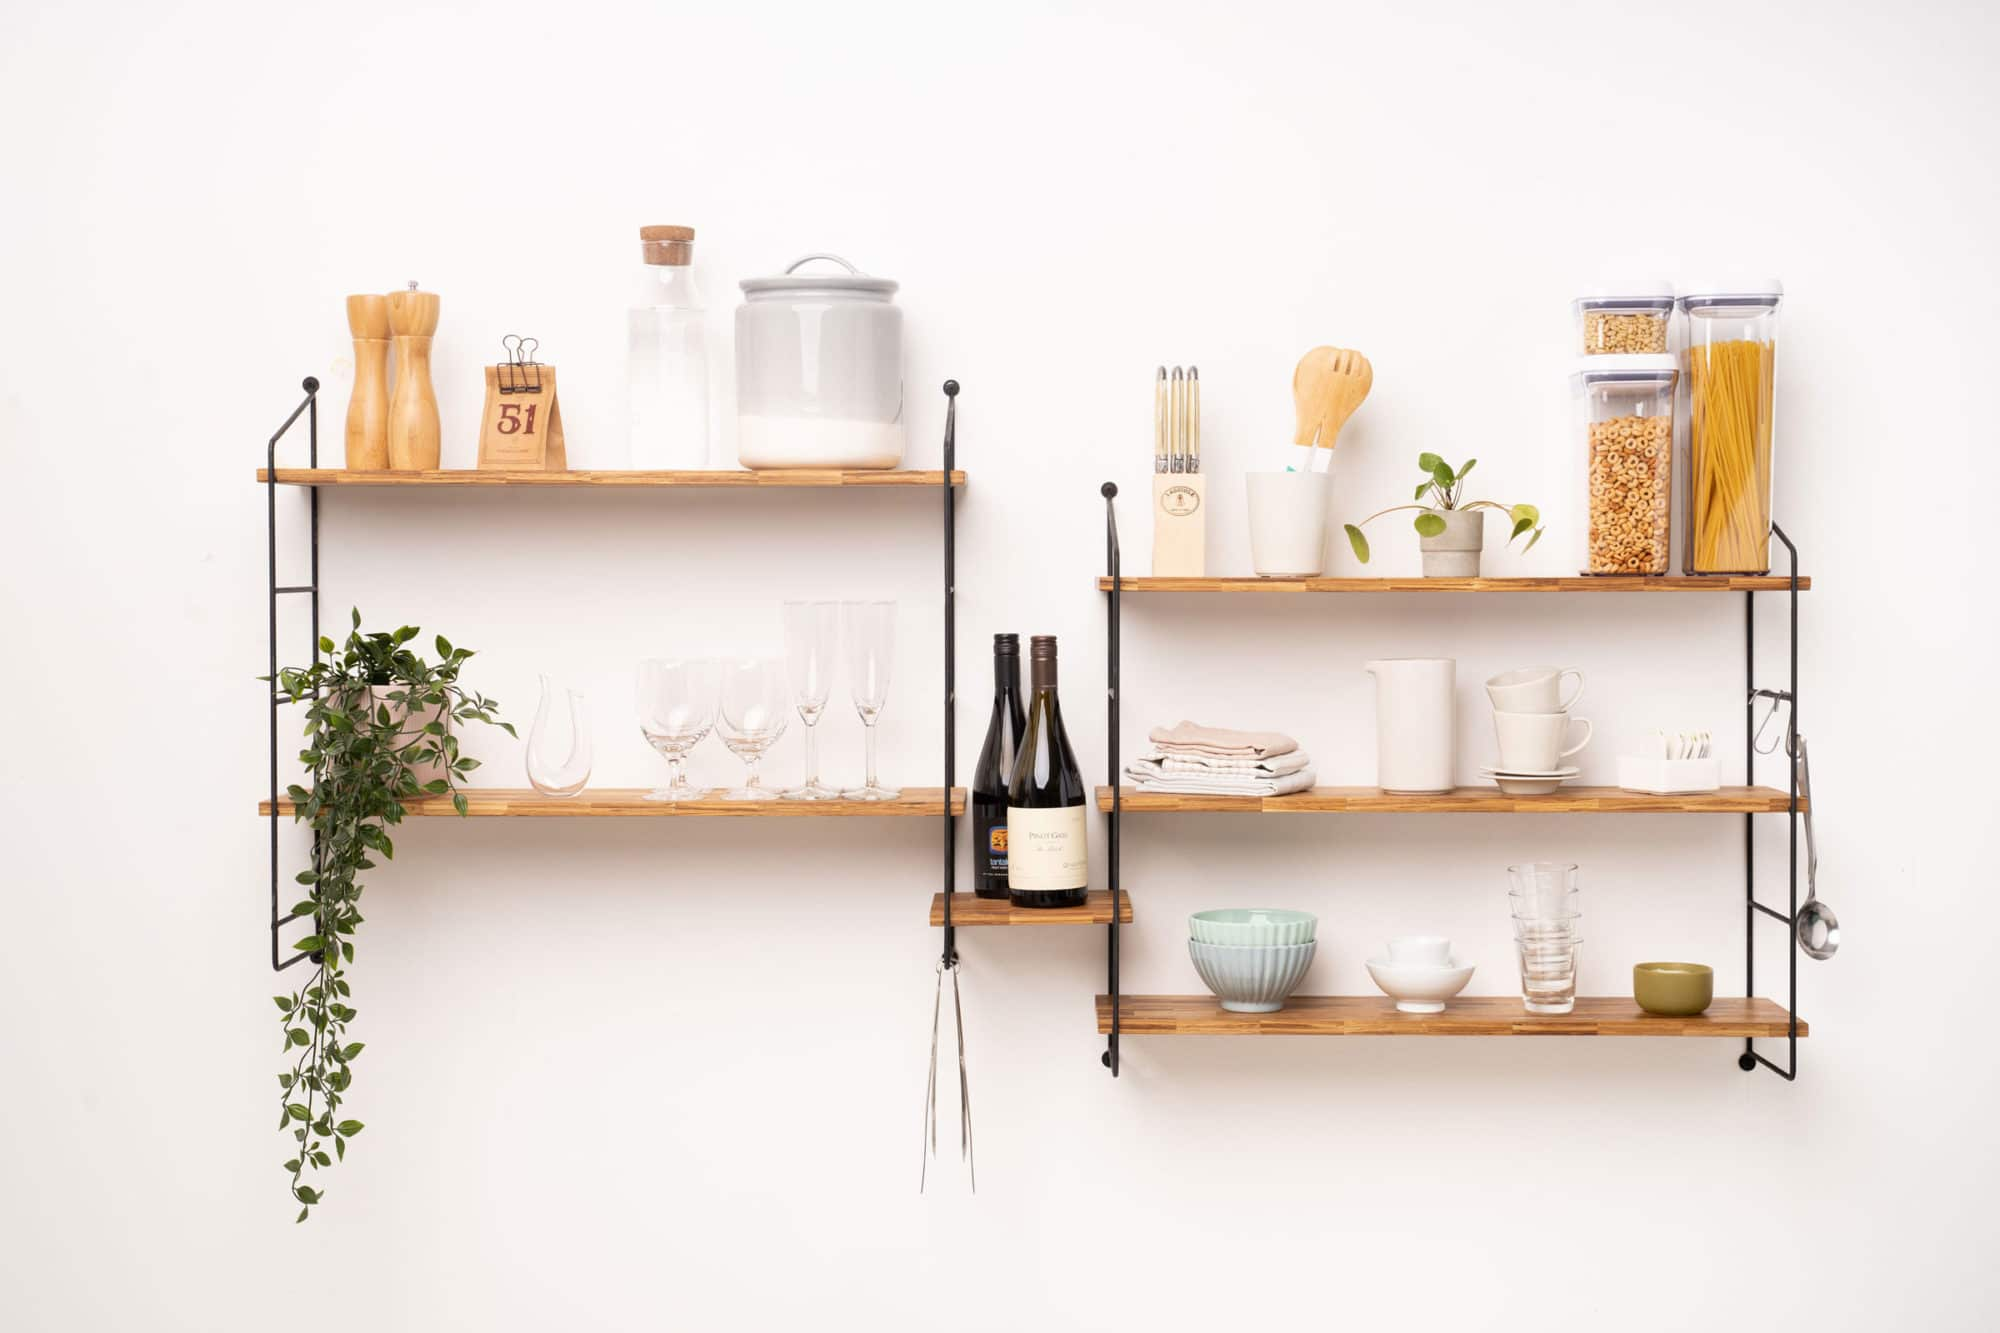 sustainable kitchen products smile chopvalue